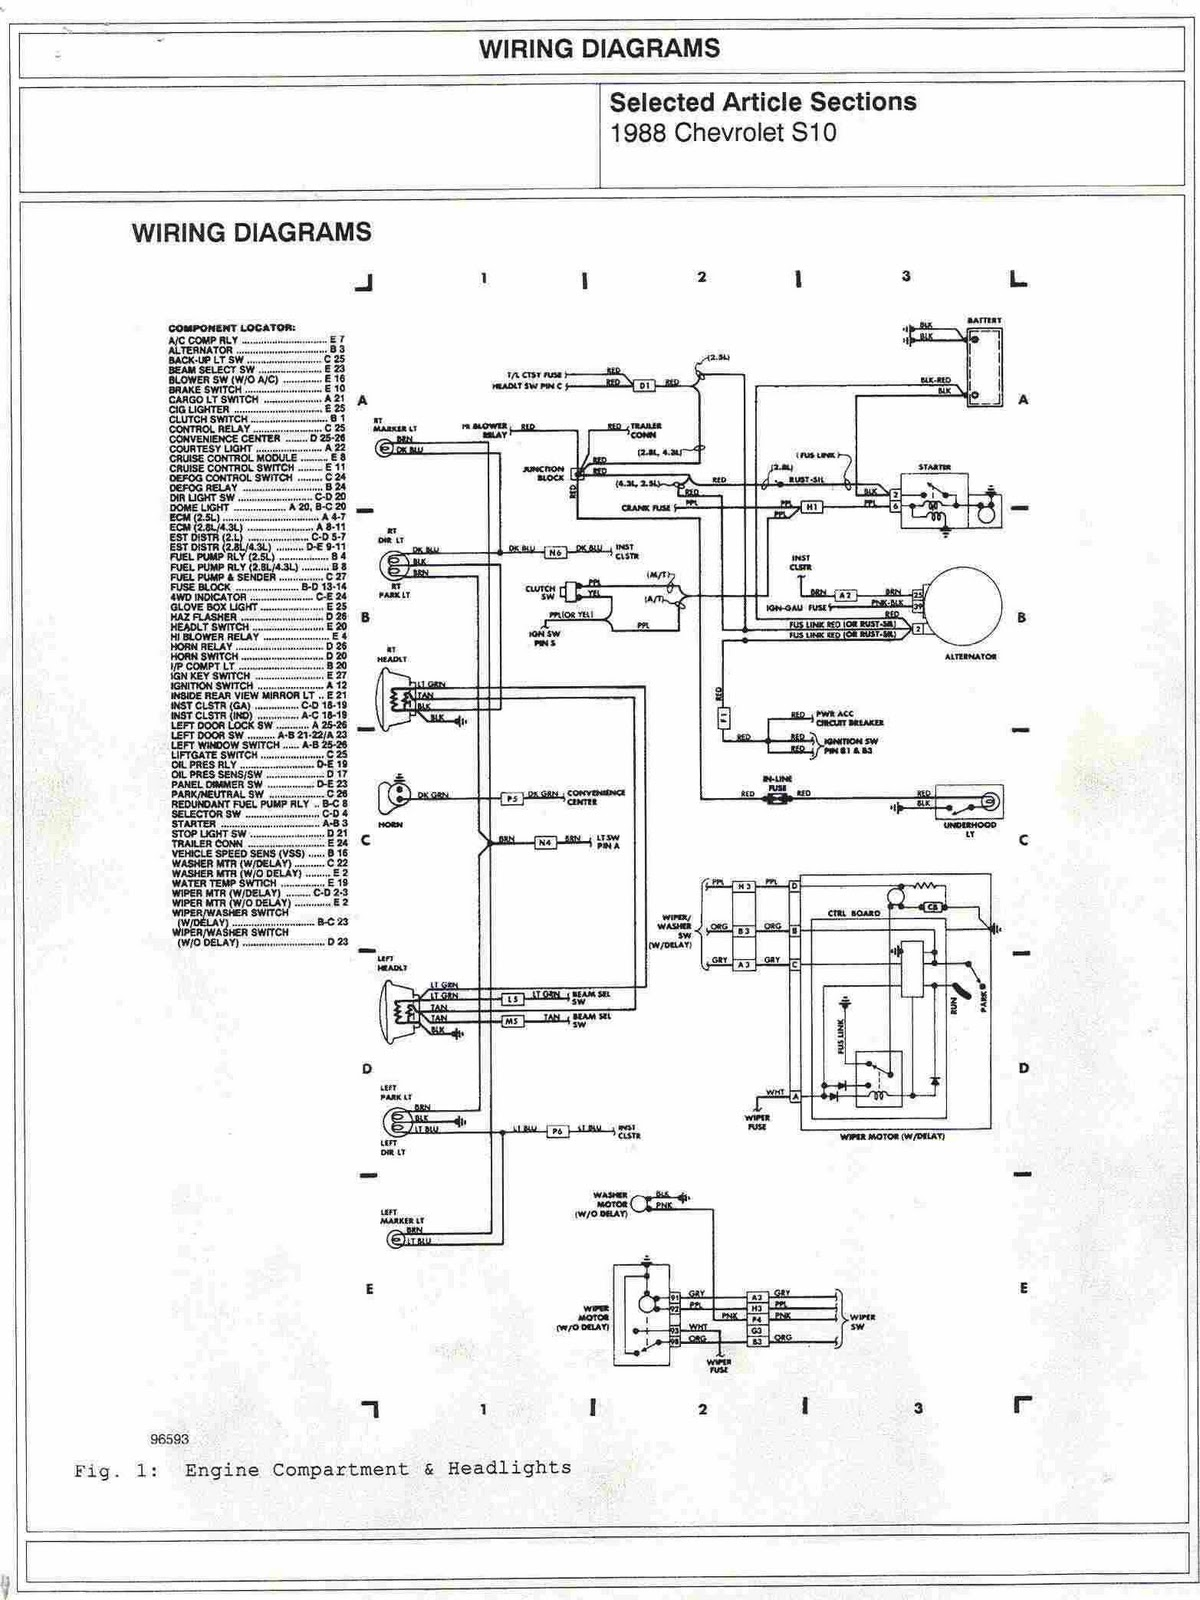 1988+Chevrolet+S10+Engine+Compartment+and+Headlights+Wiring+Diagrams 95 s10 wiring diagram 95 tahoe wiring diagram \u2022 wiring diagrams 1988 toyota pickup headlight wiring diagram at readyjetset.co